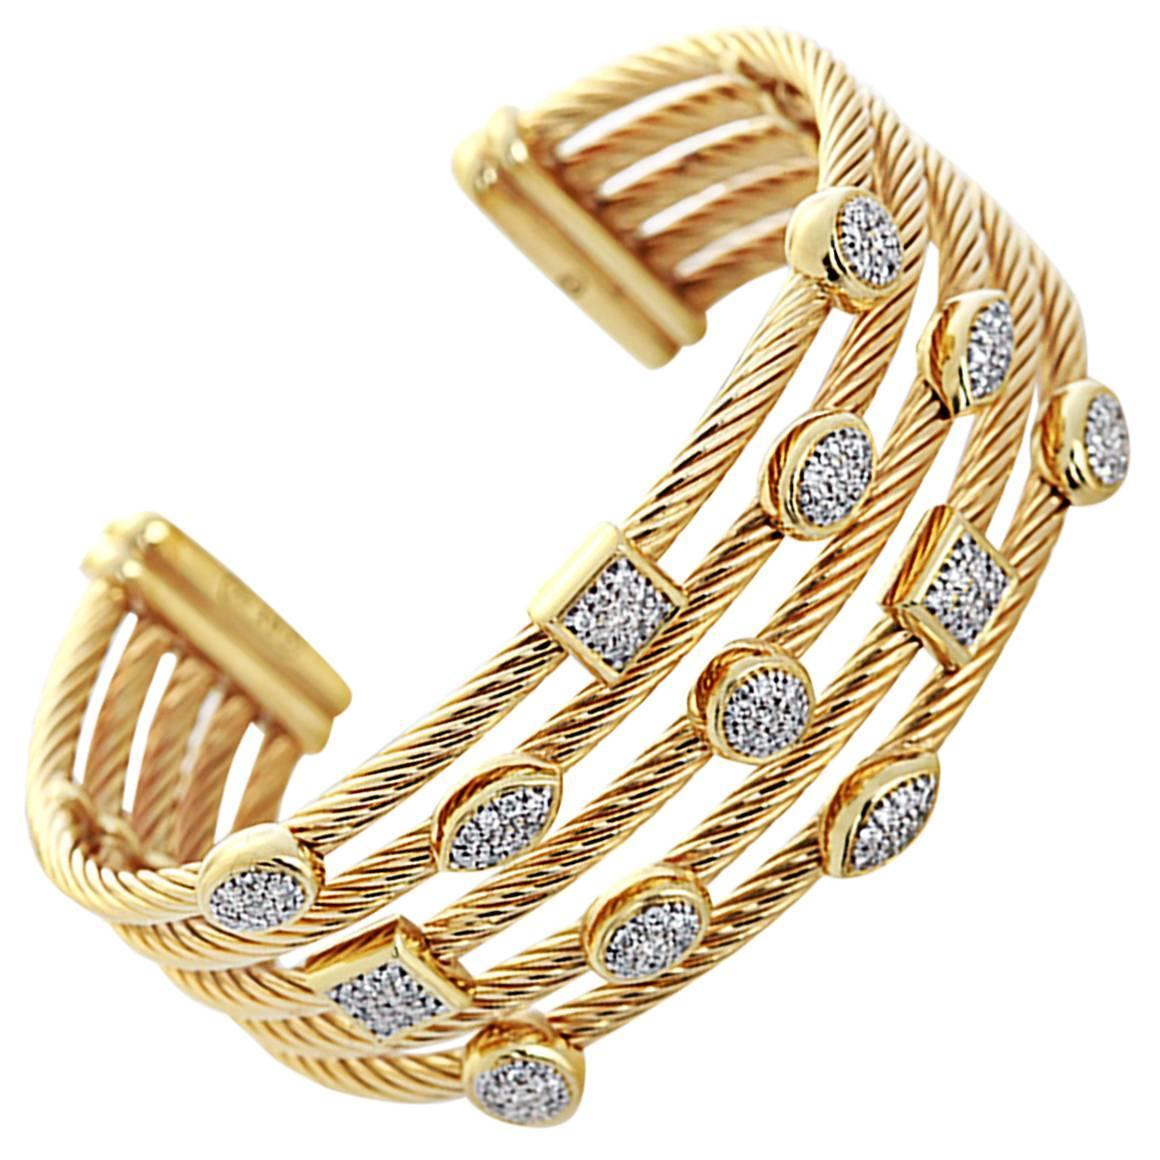 David Yurman diamond gold Confetti Wide Cuff Bracelet For Sale at